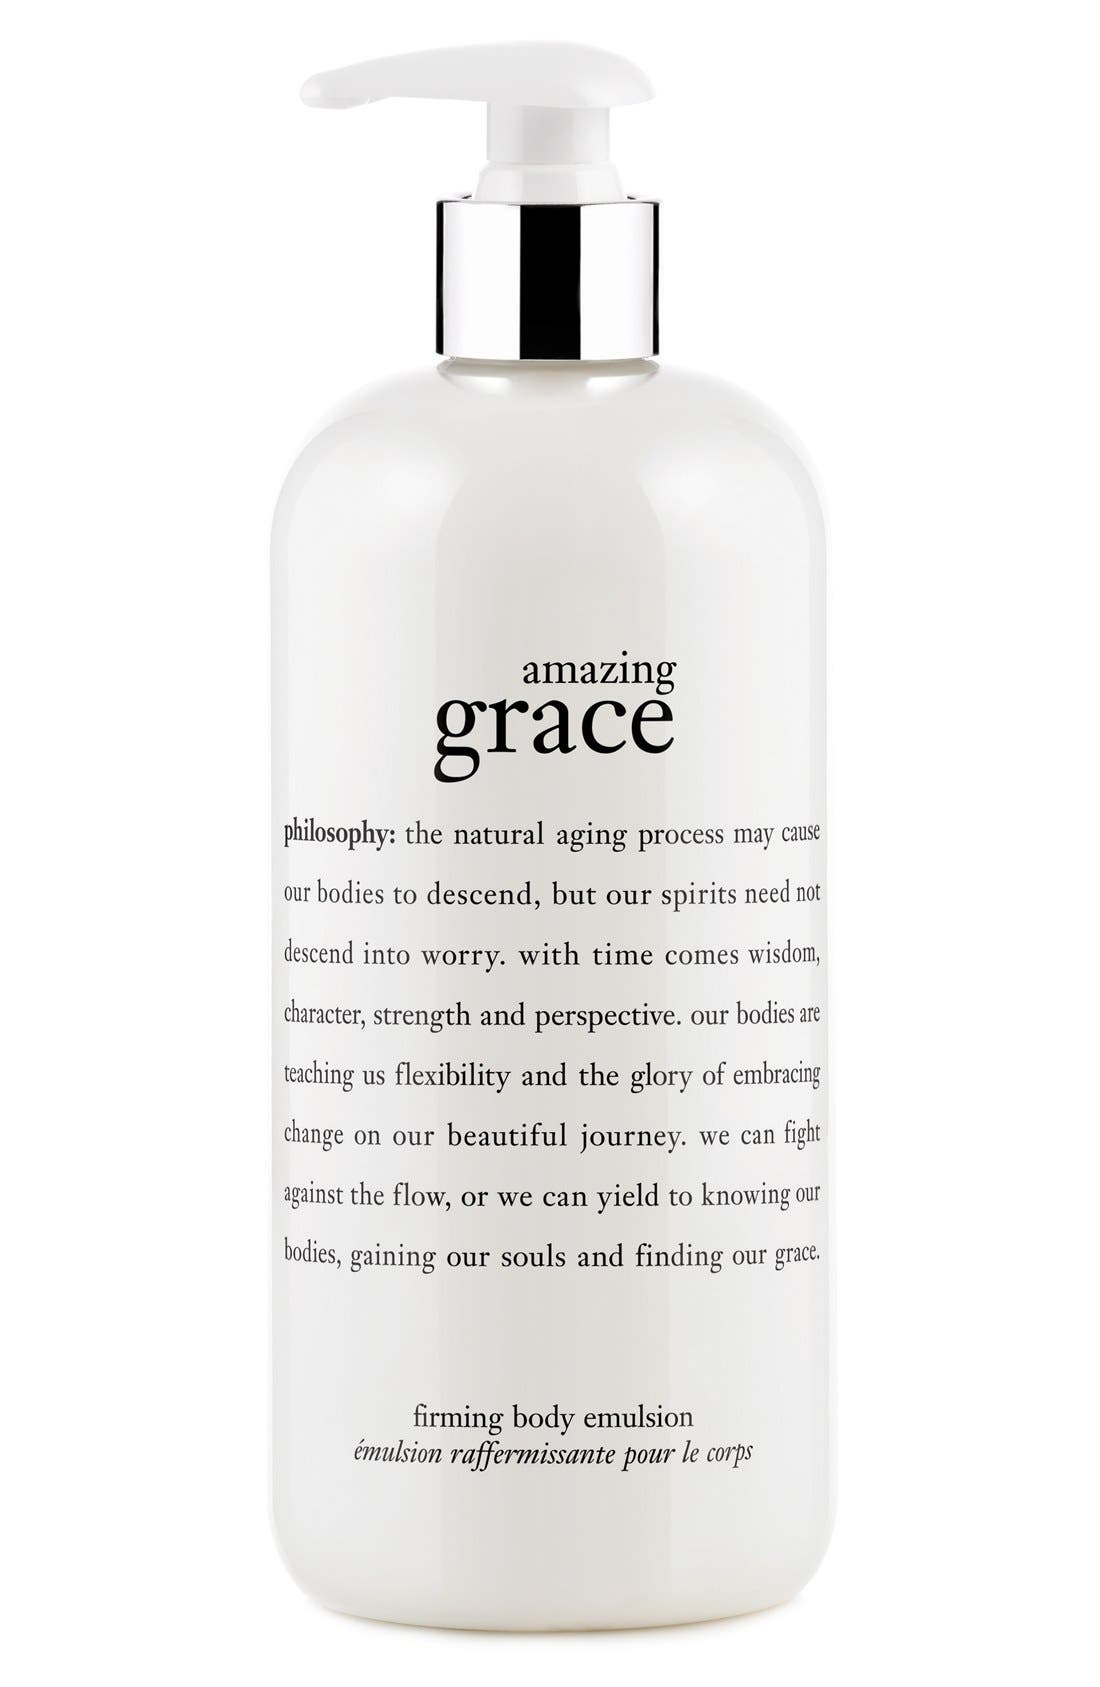 philosophy 'amazing grace' firming body emulsion